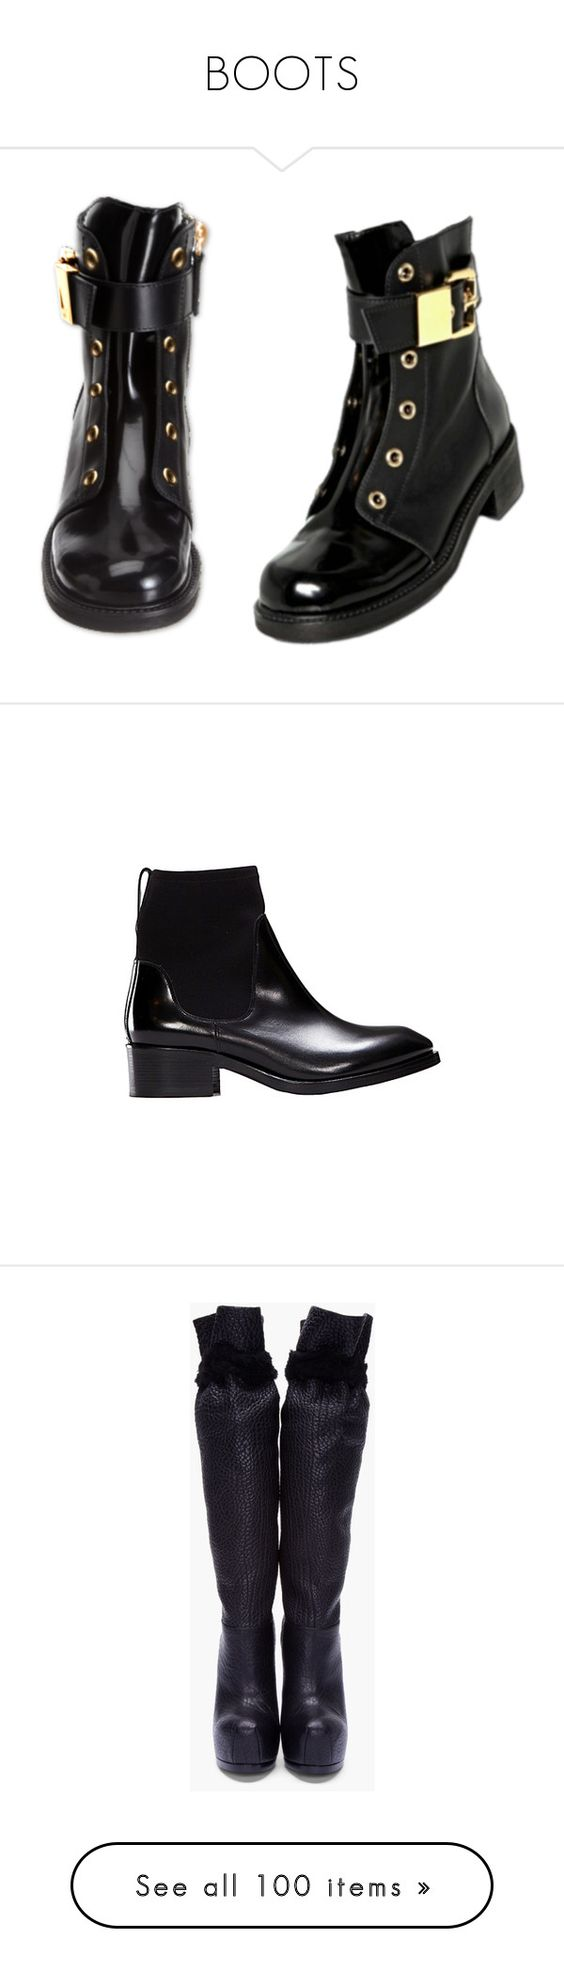 """BOOTS"" by anul1 ❤ liked on Polyvore featuring shoes, boots, ankle booties, high heel platform boots, platform boots, knee high boots, black knee high heel boots, leather sole boots, footwear and sapatos"